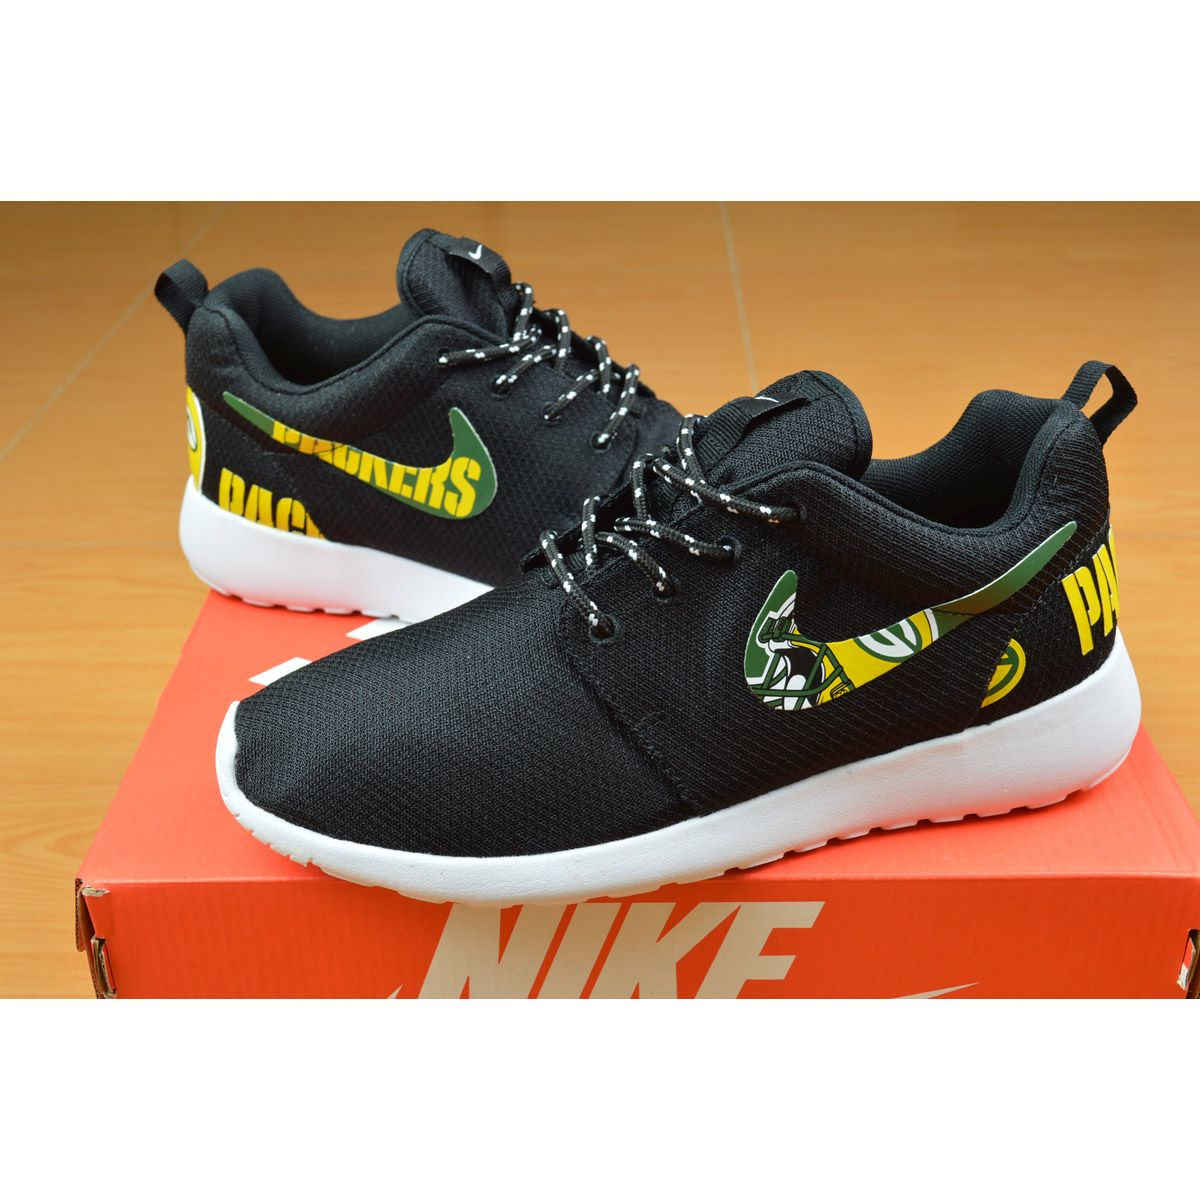 New Release Nike Roshe Run Green Bay Packers Shoes